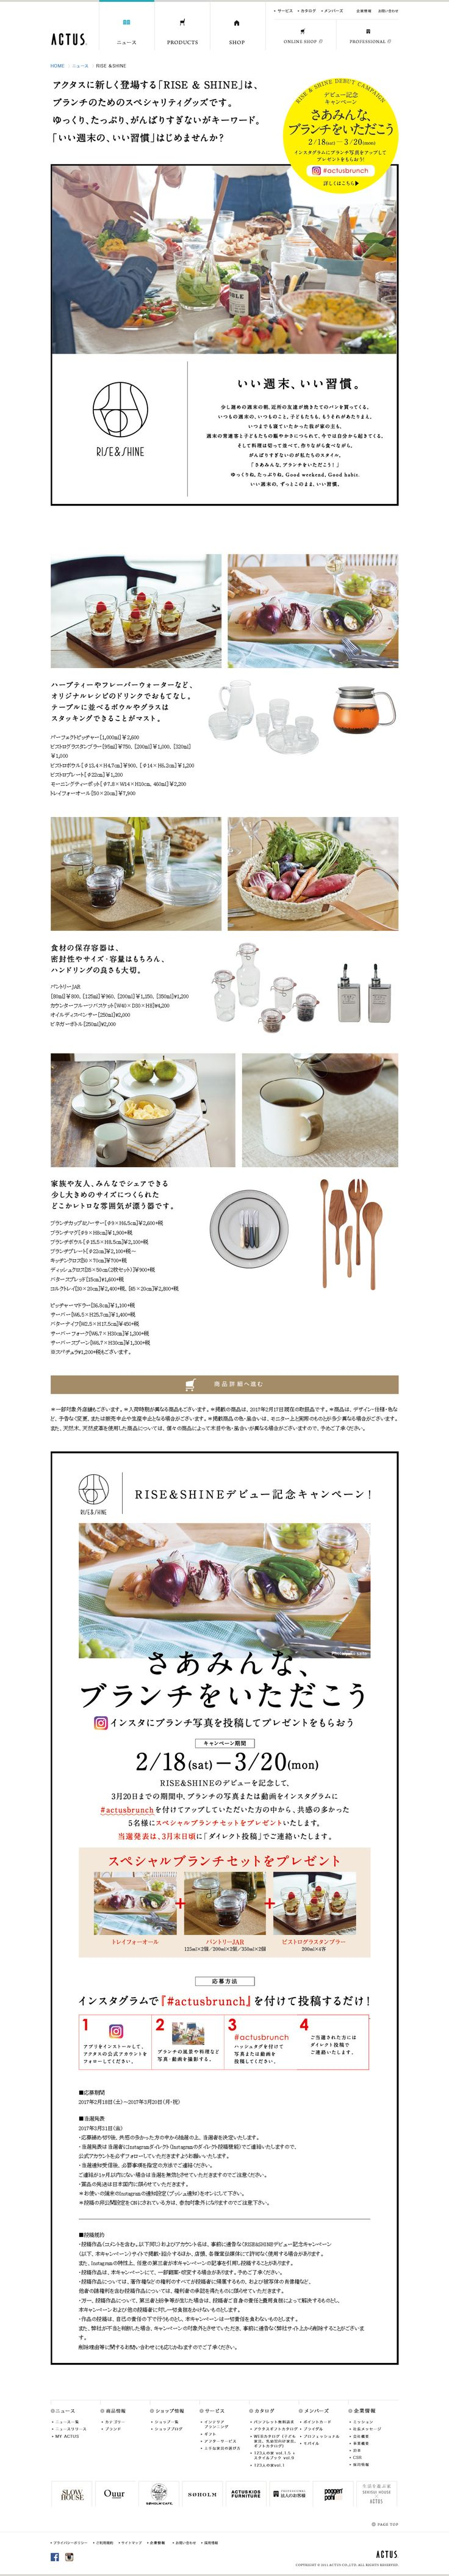 RISE & SHINE| ACTUS(アクタス) インテリア・家具・ソファ・チェア・テーブル・ギフト http://www.actus-interior.com/news/1702rise-and-shine/